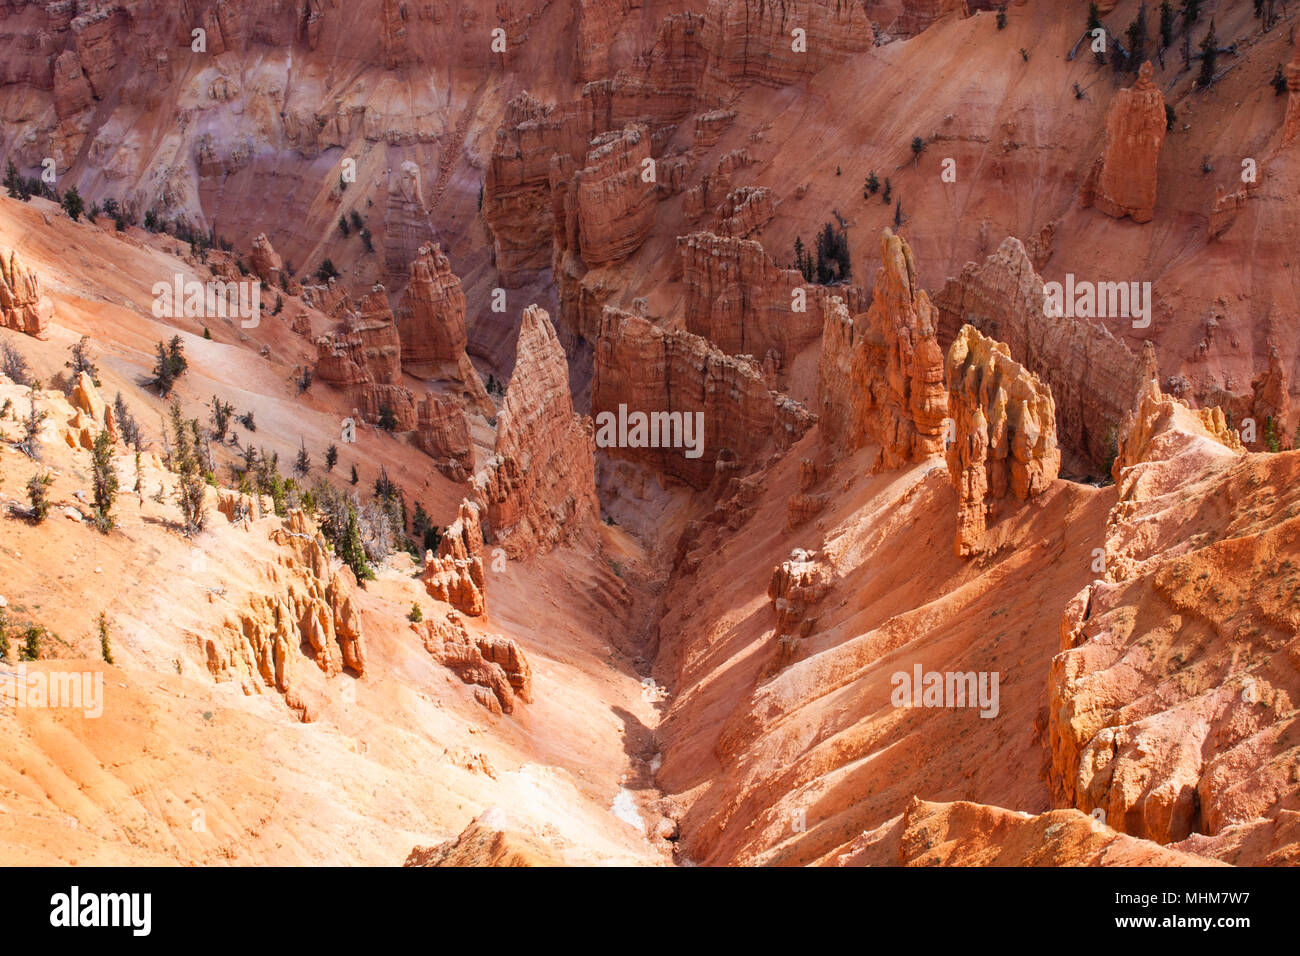 Hoodoos and colorful cliffs at Cedar Breaks National Monument in Utah.  The Indians called Cedar Breaks the 'Circle of Painted Cliffs.' At an elevatio - Stock Image